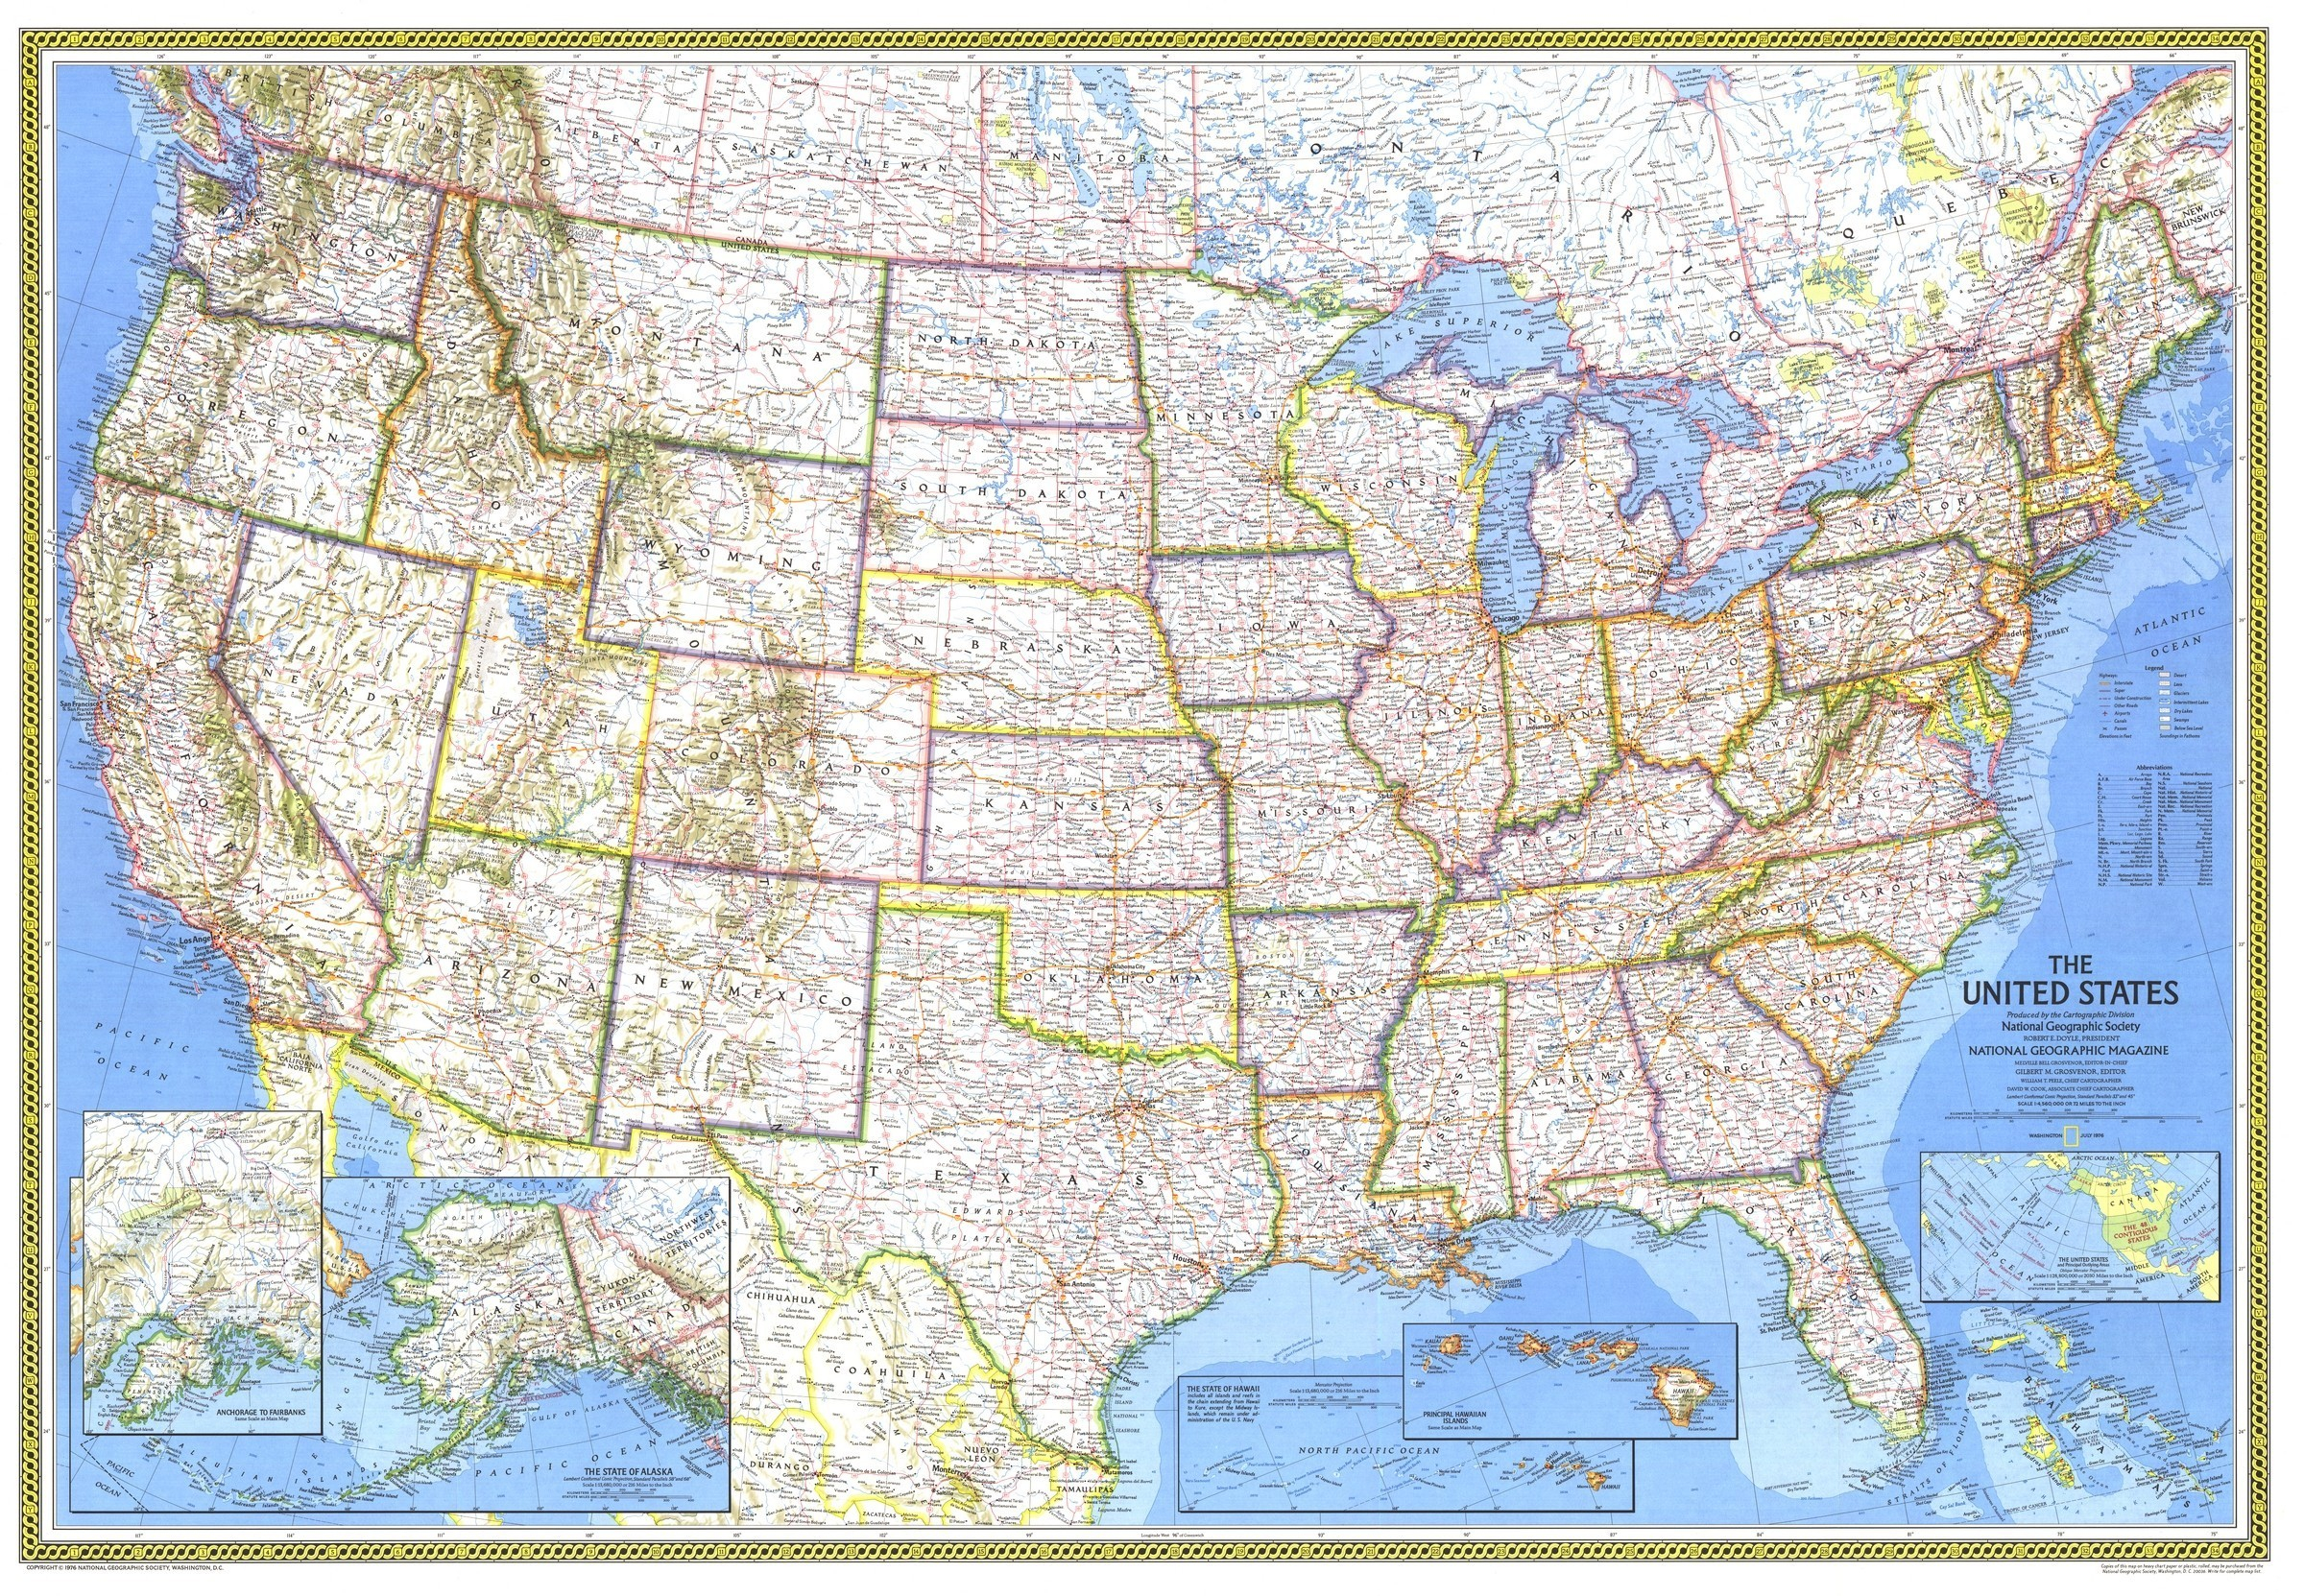 National Geographic Us Map Printable Valid United States Map Image - National Geographic Printable Maps